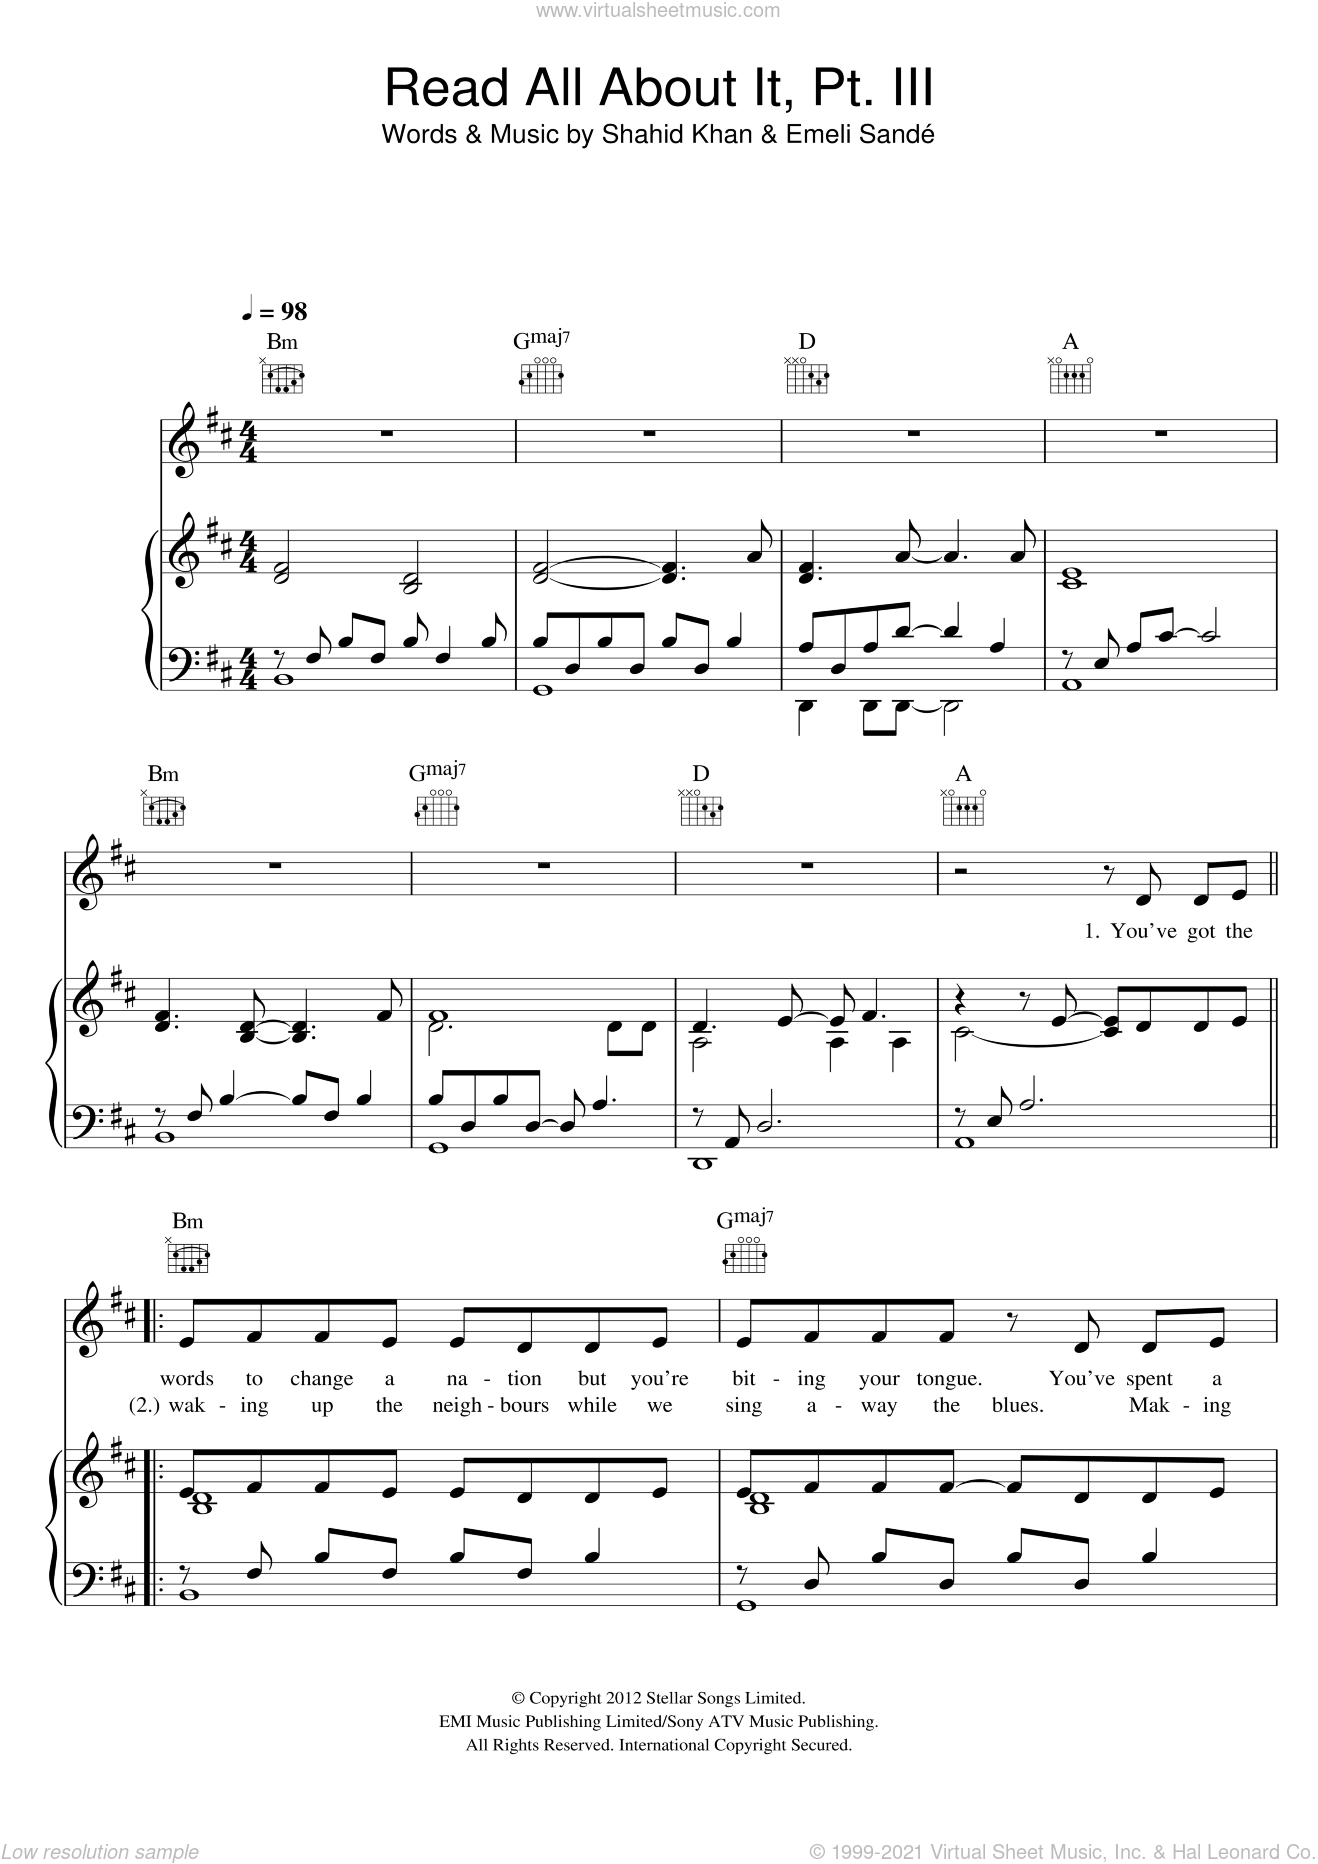 sande read all about it part iii sheet music for voice piano or guitar. Black Bedroom Furniture Sets. Home Design Ideas